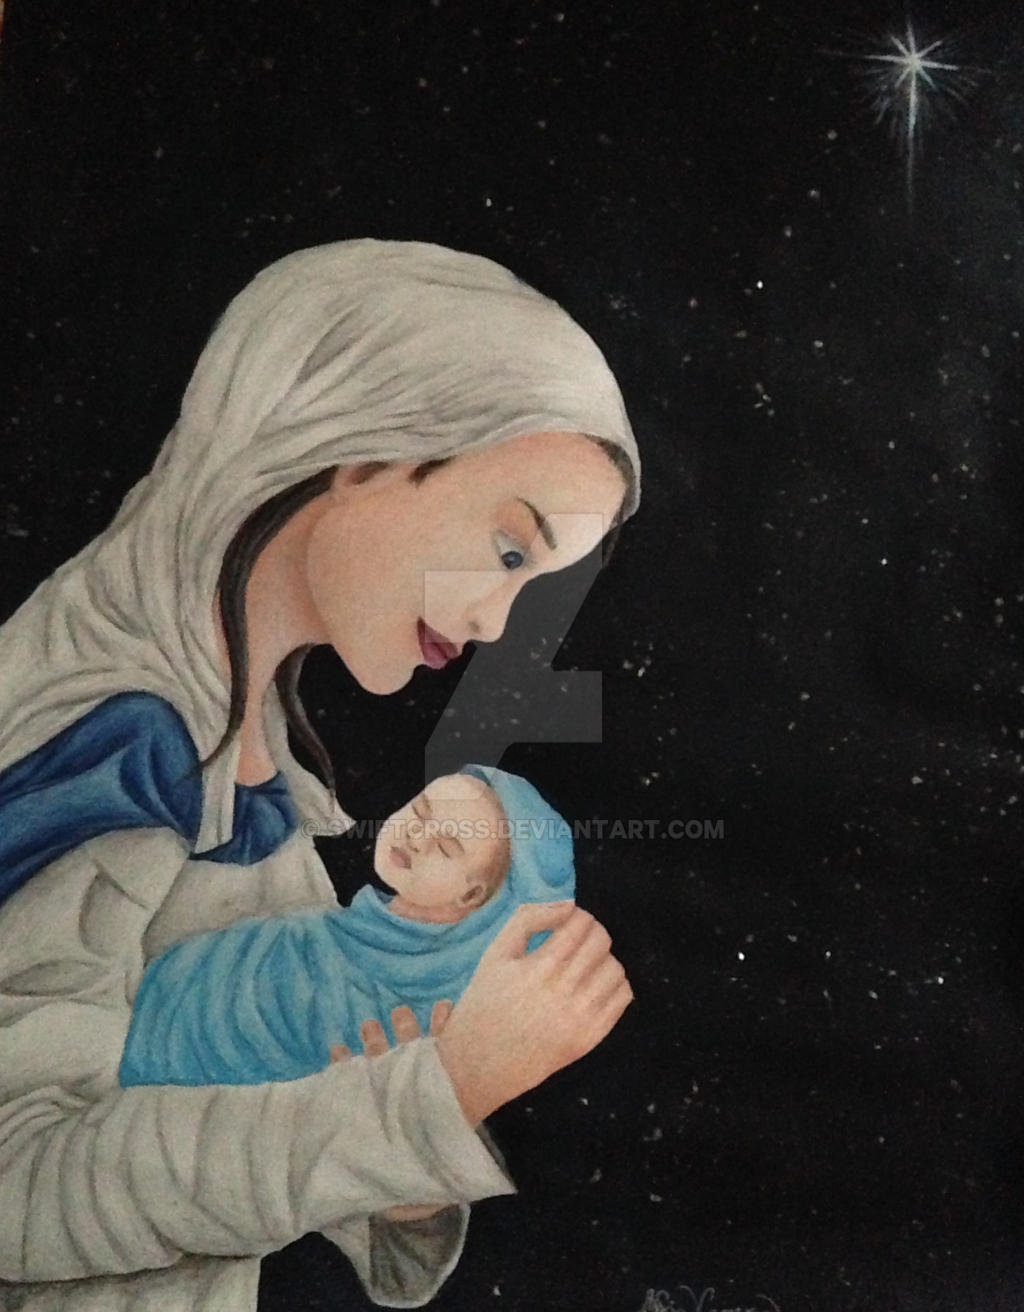 Mother and Child by swiftcross